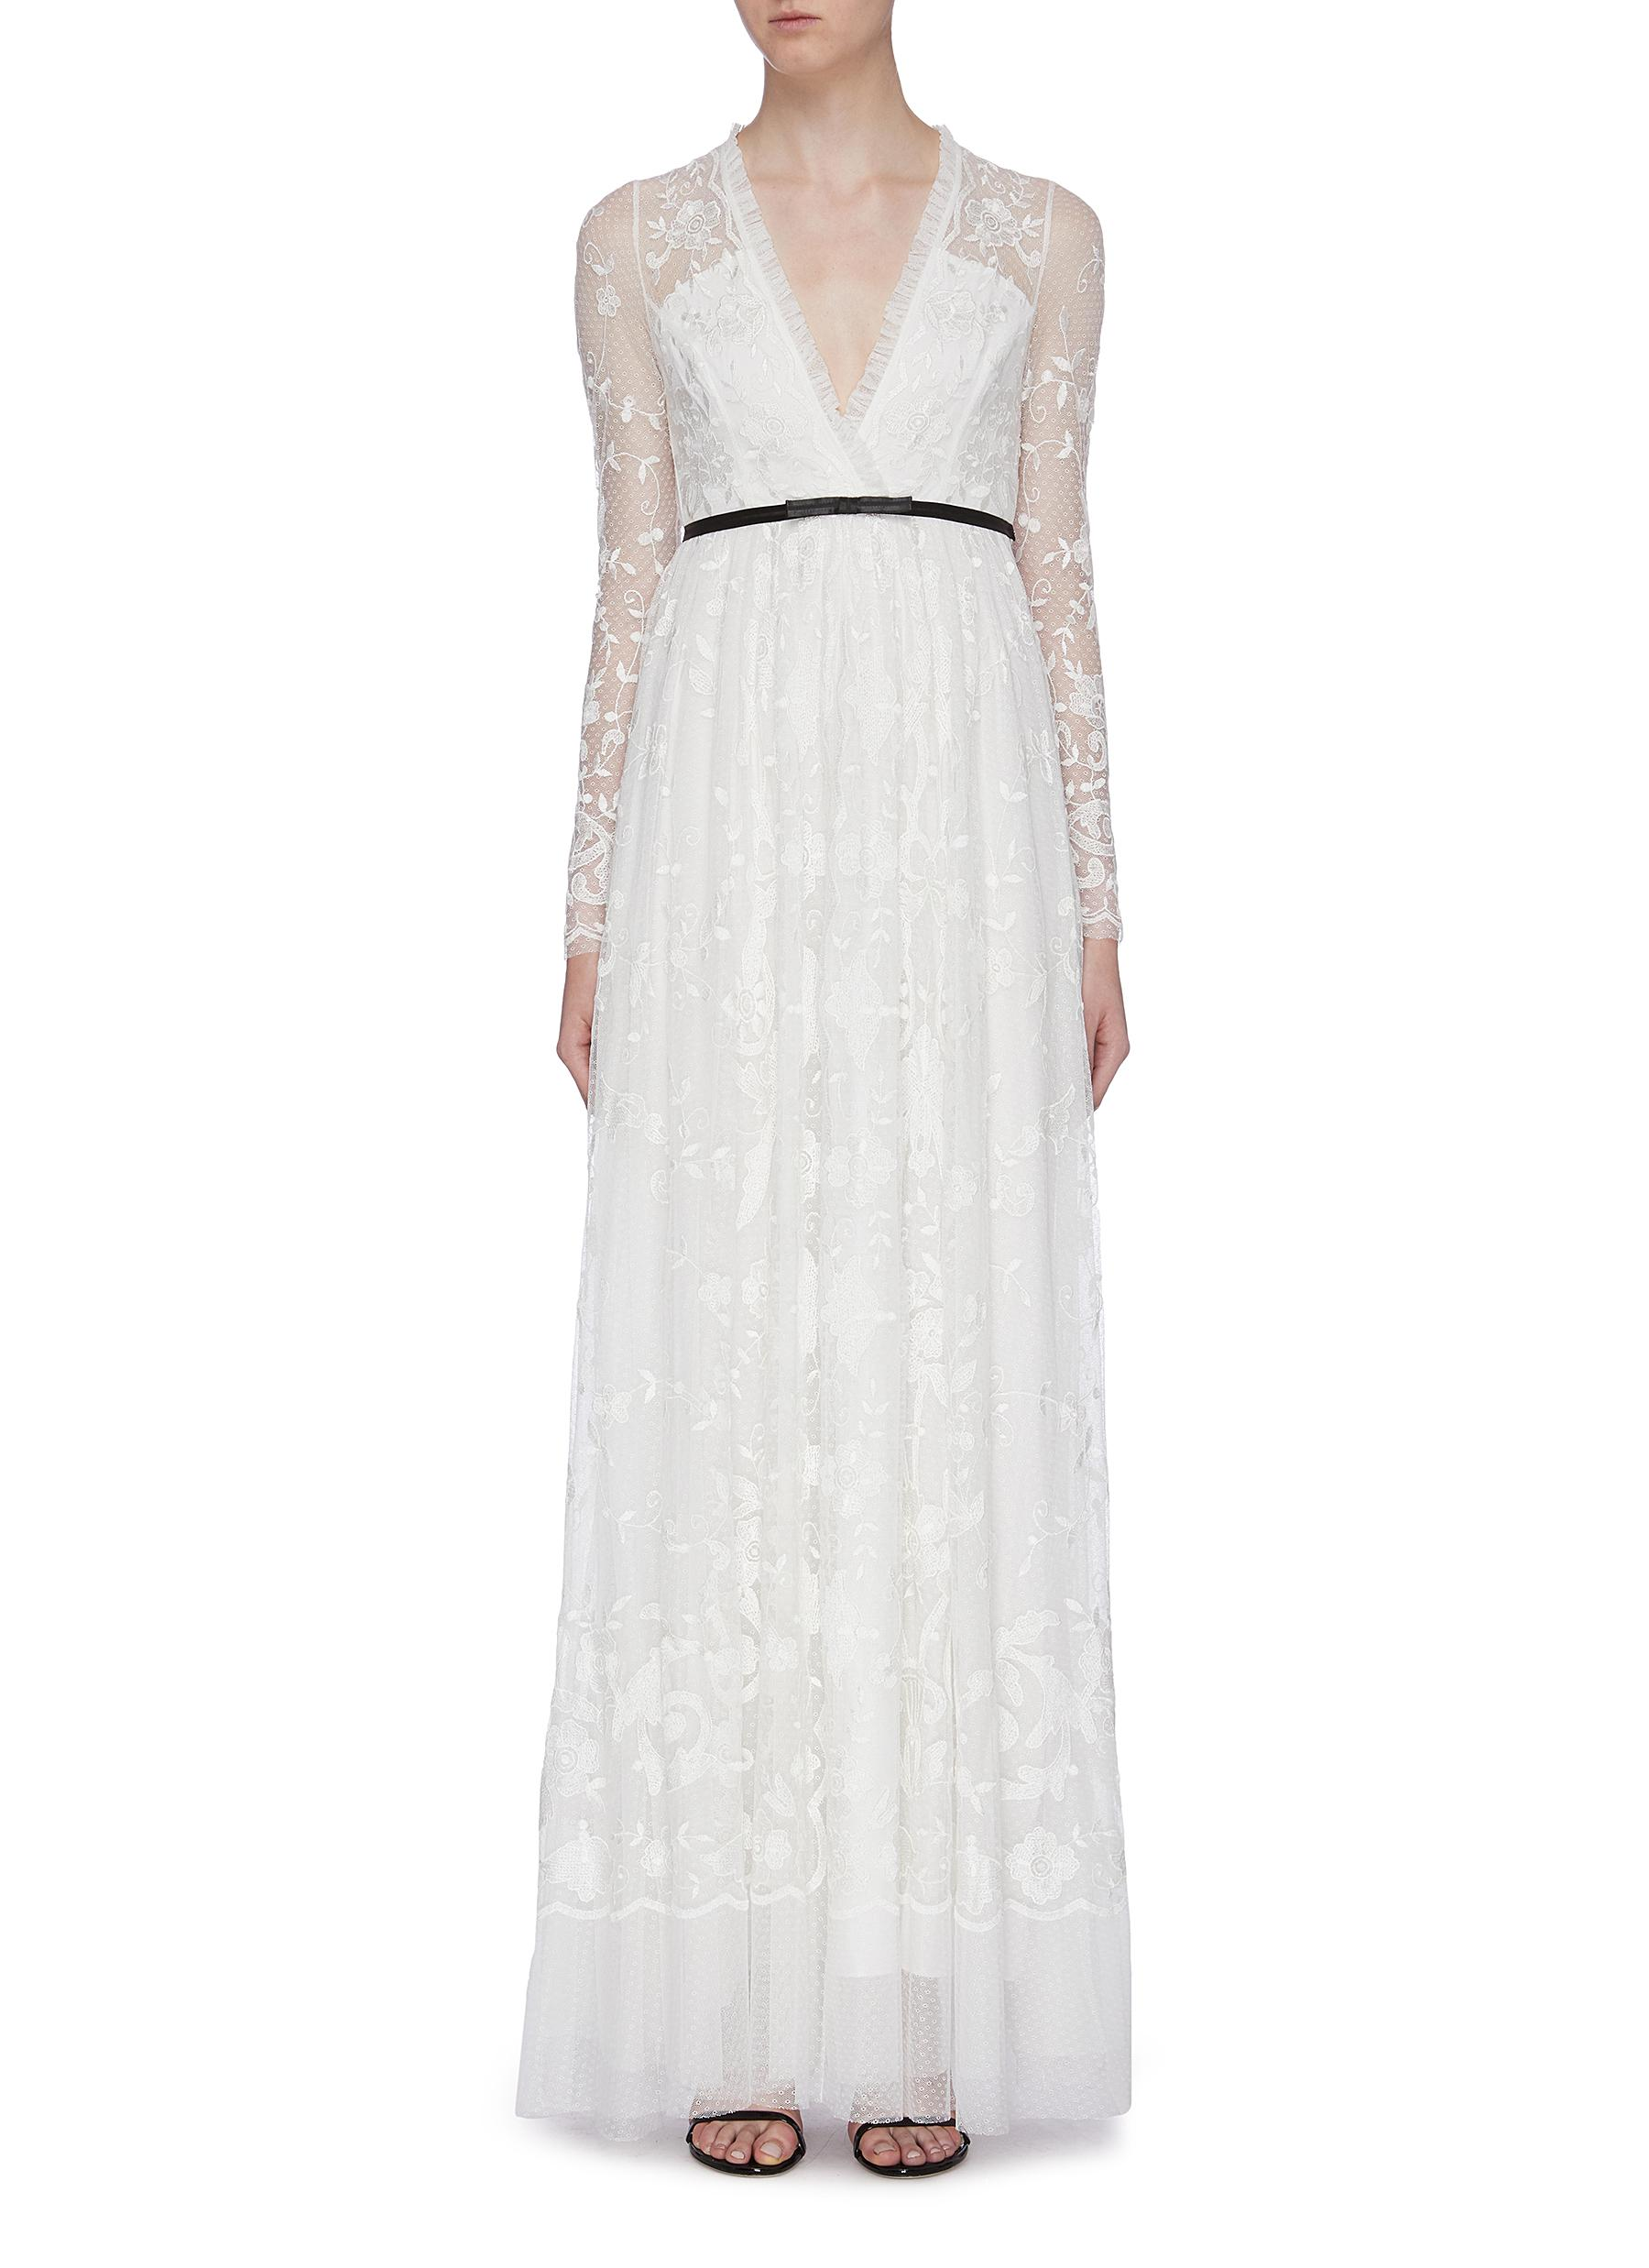 Eleanor floral embroidered mock wrap tulle gown by Needle & Thread